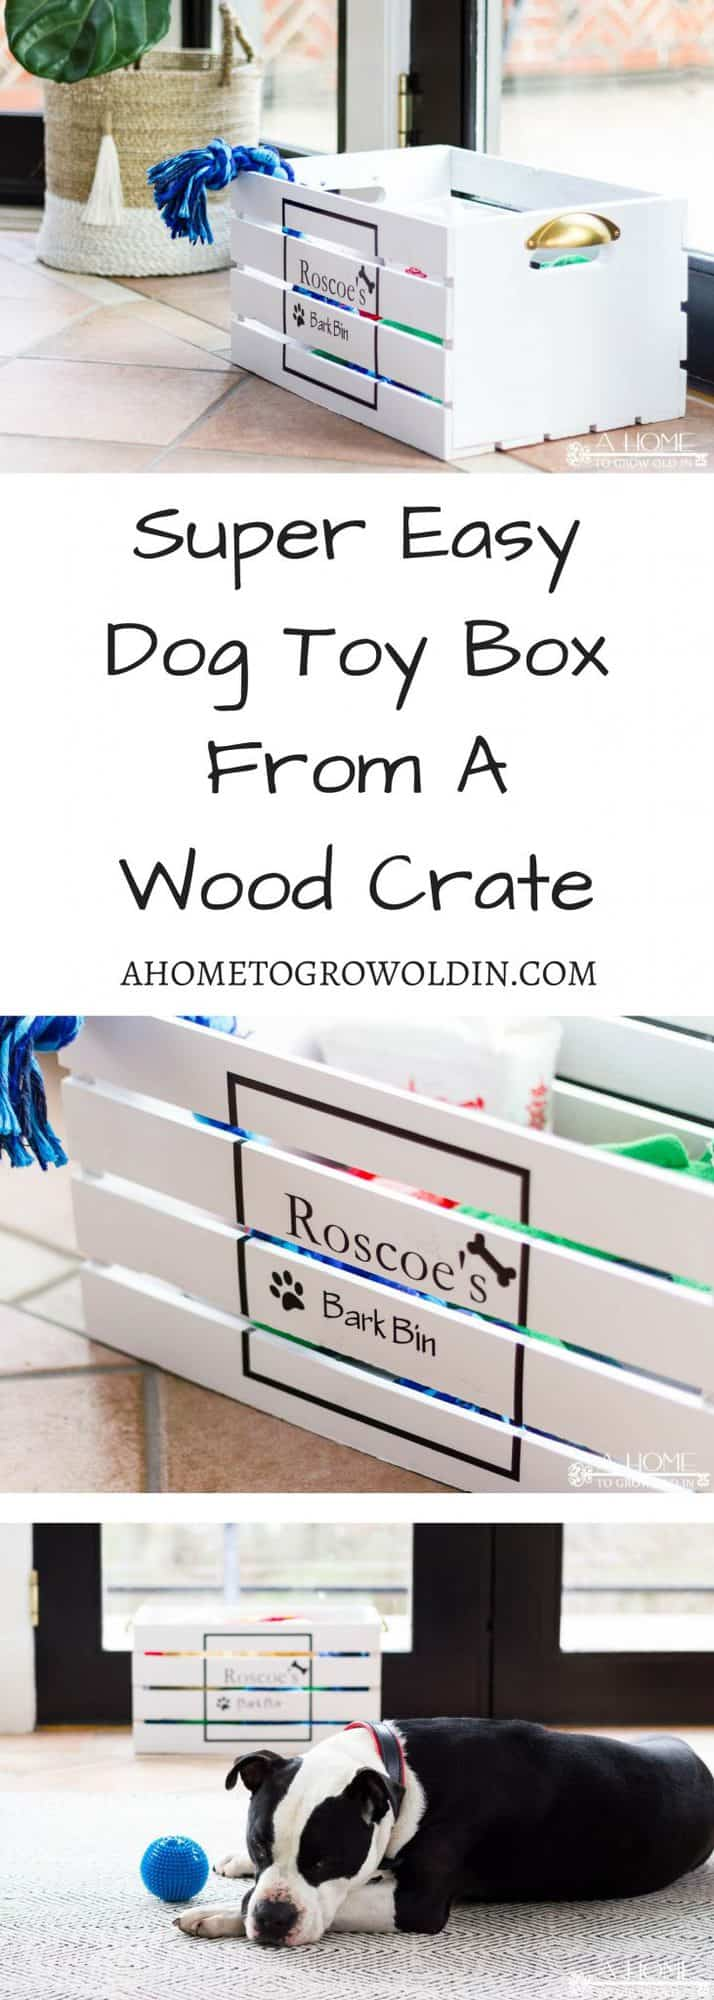 Using a wooden crate is a super easy way to make a toy box for your pampered pet! You'll be ready to start organizing your dog toys in just a few of hours! Includes a free Silhouette cut file.